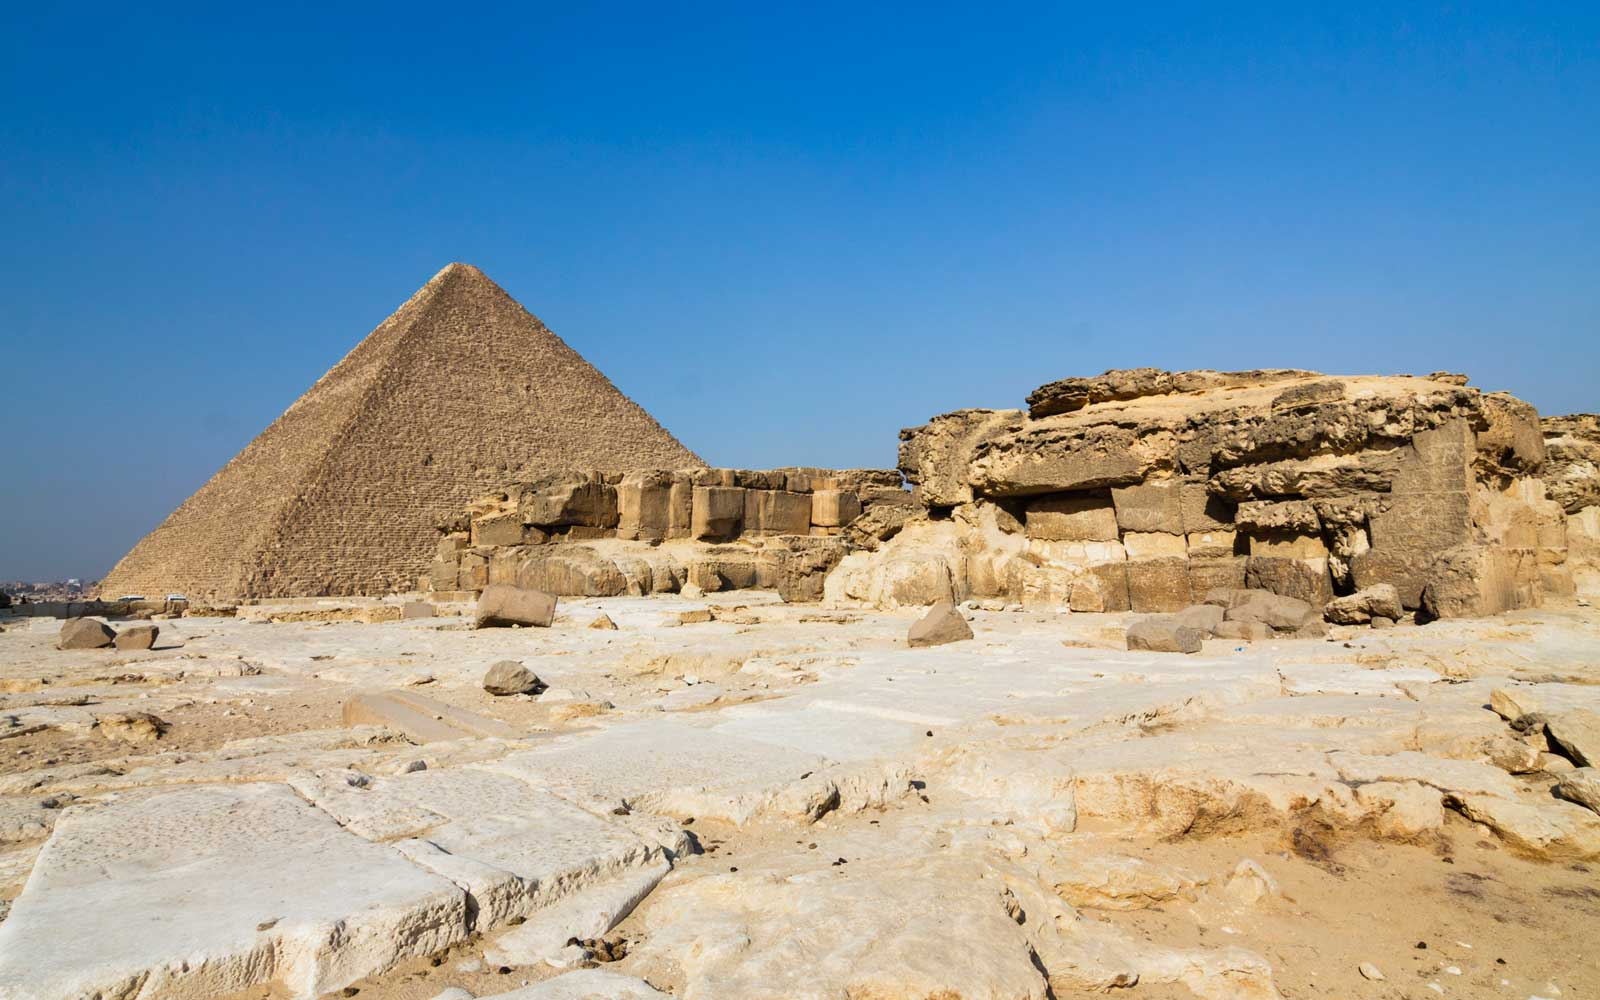 Archaeologists Uncover 3,200-year-old Cheese in Egyptian Tomb